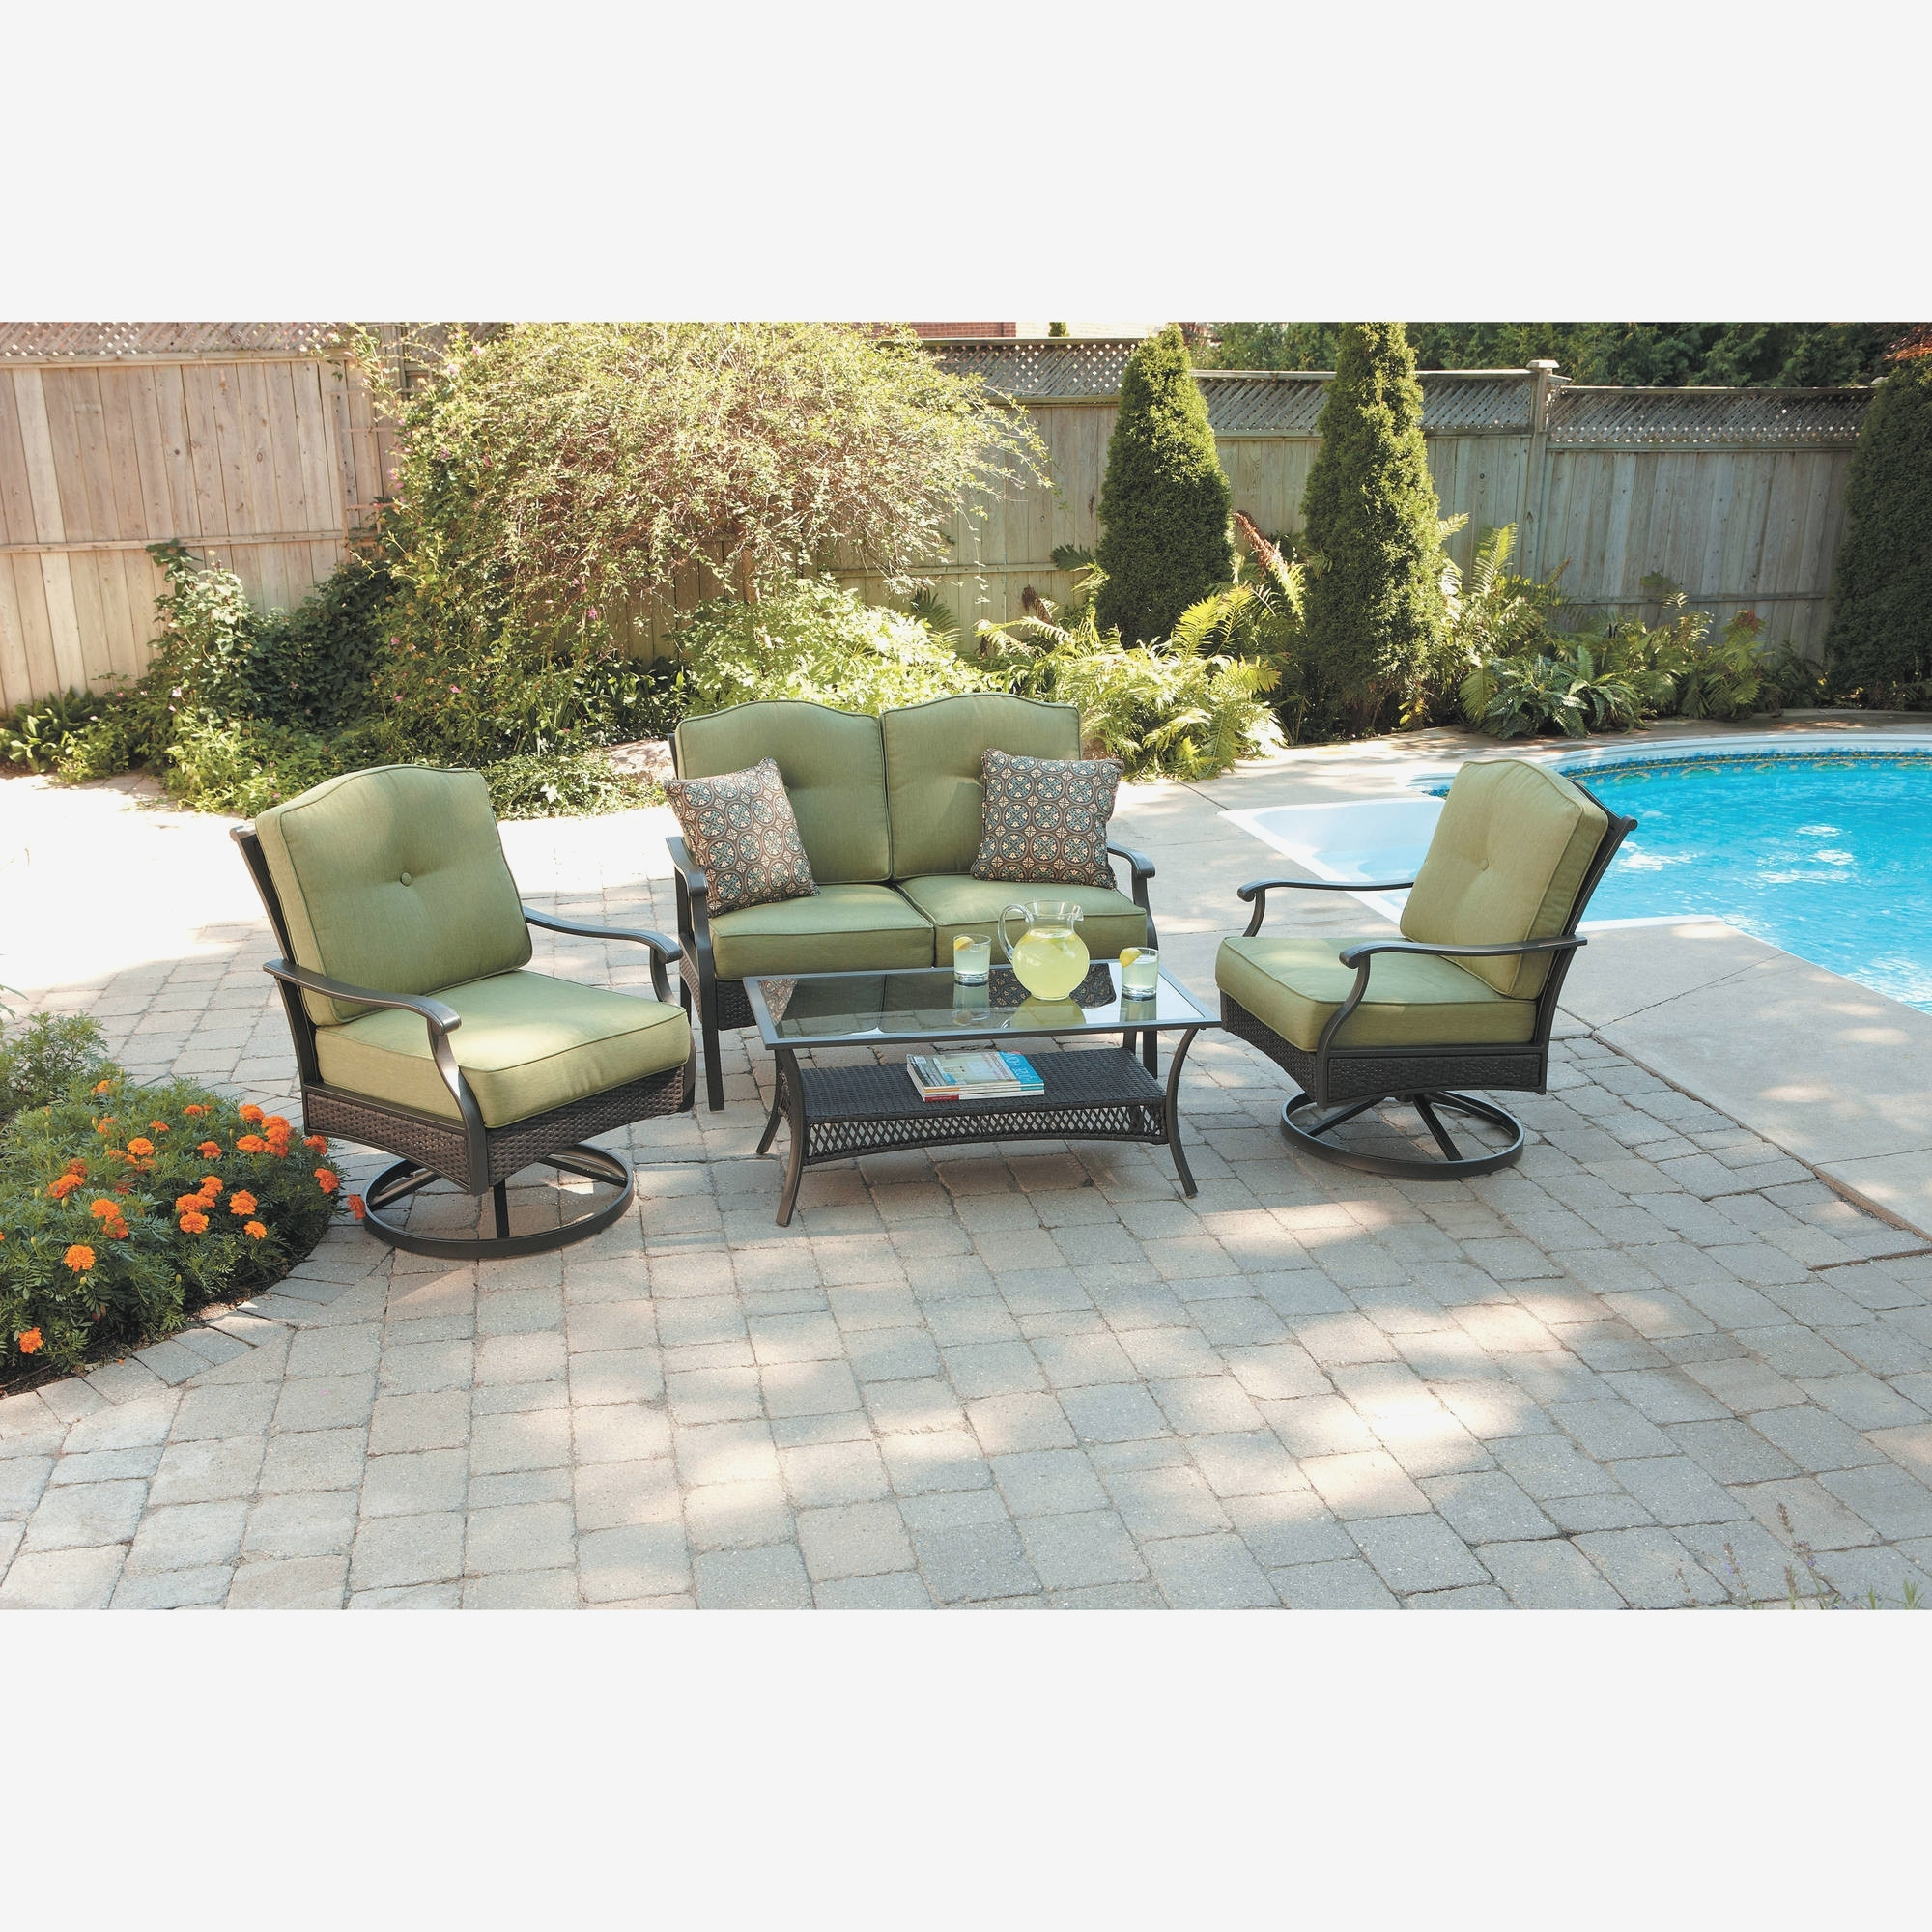 Sears Patio Furniture Conversation Sets Inside Most Popular Sears High Top Patio Furniture Awesome Sears Patio Swing Luxury (View 11 of 15)